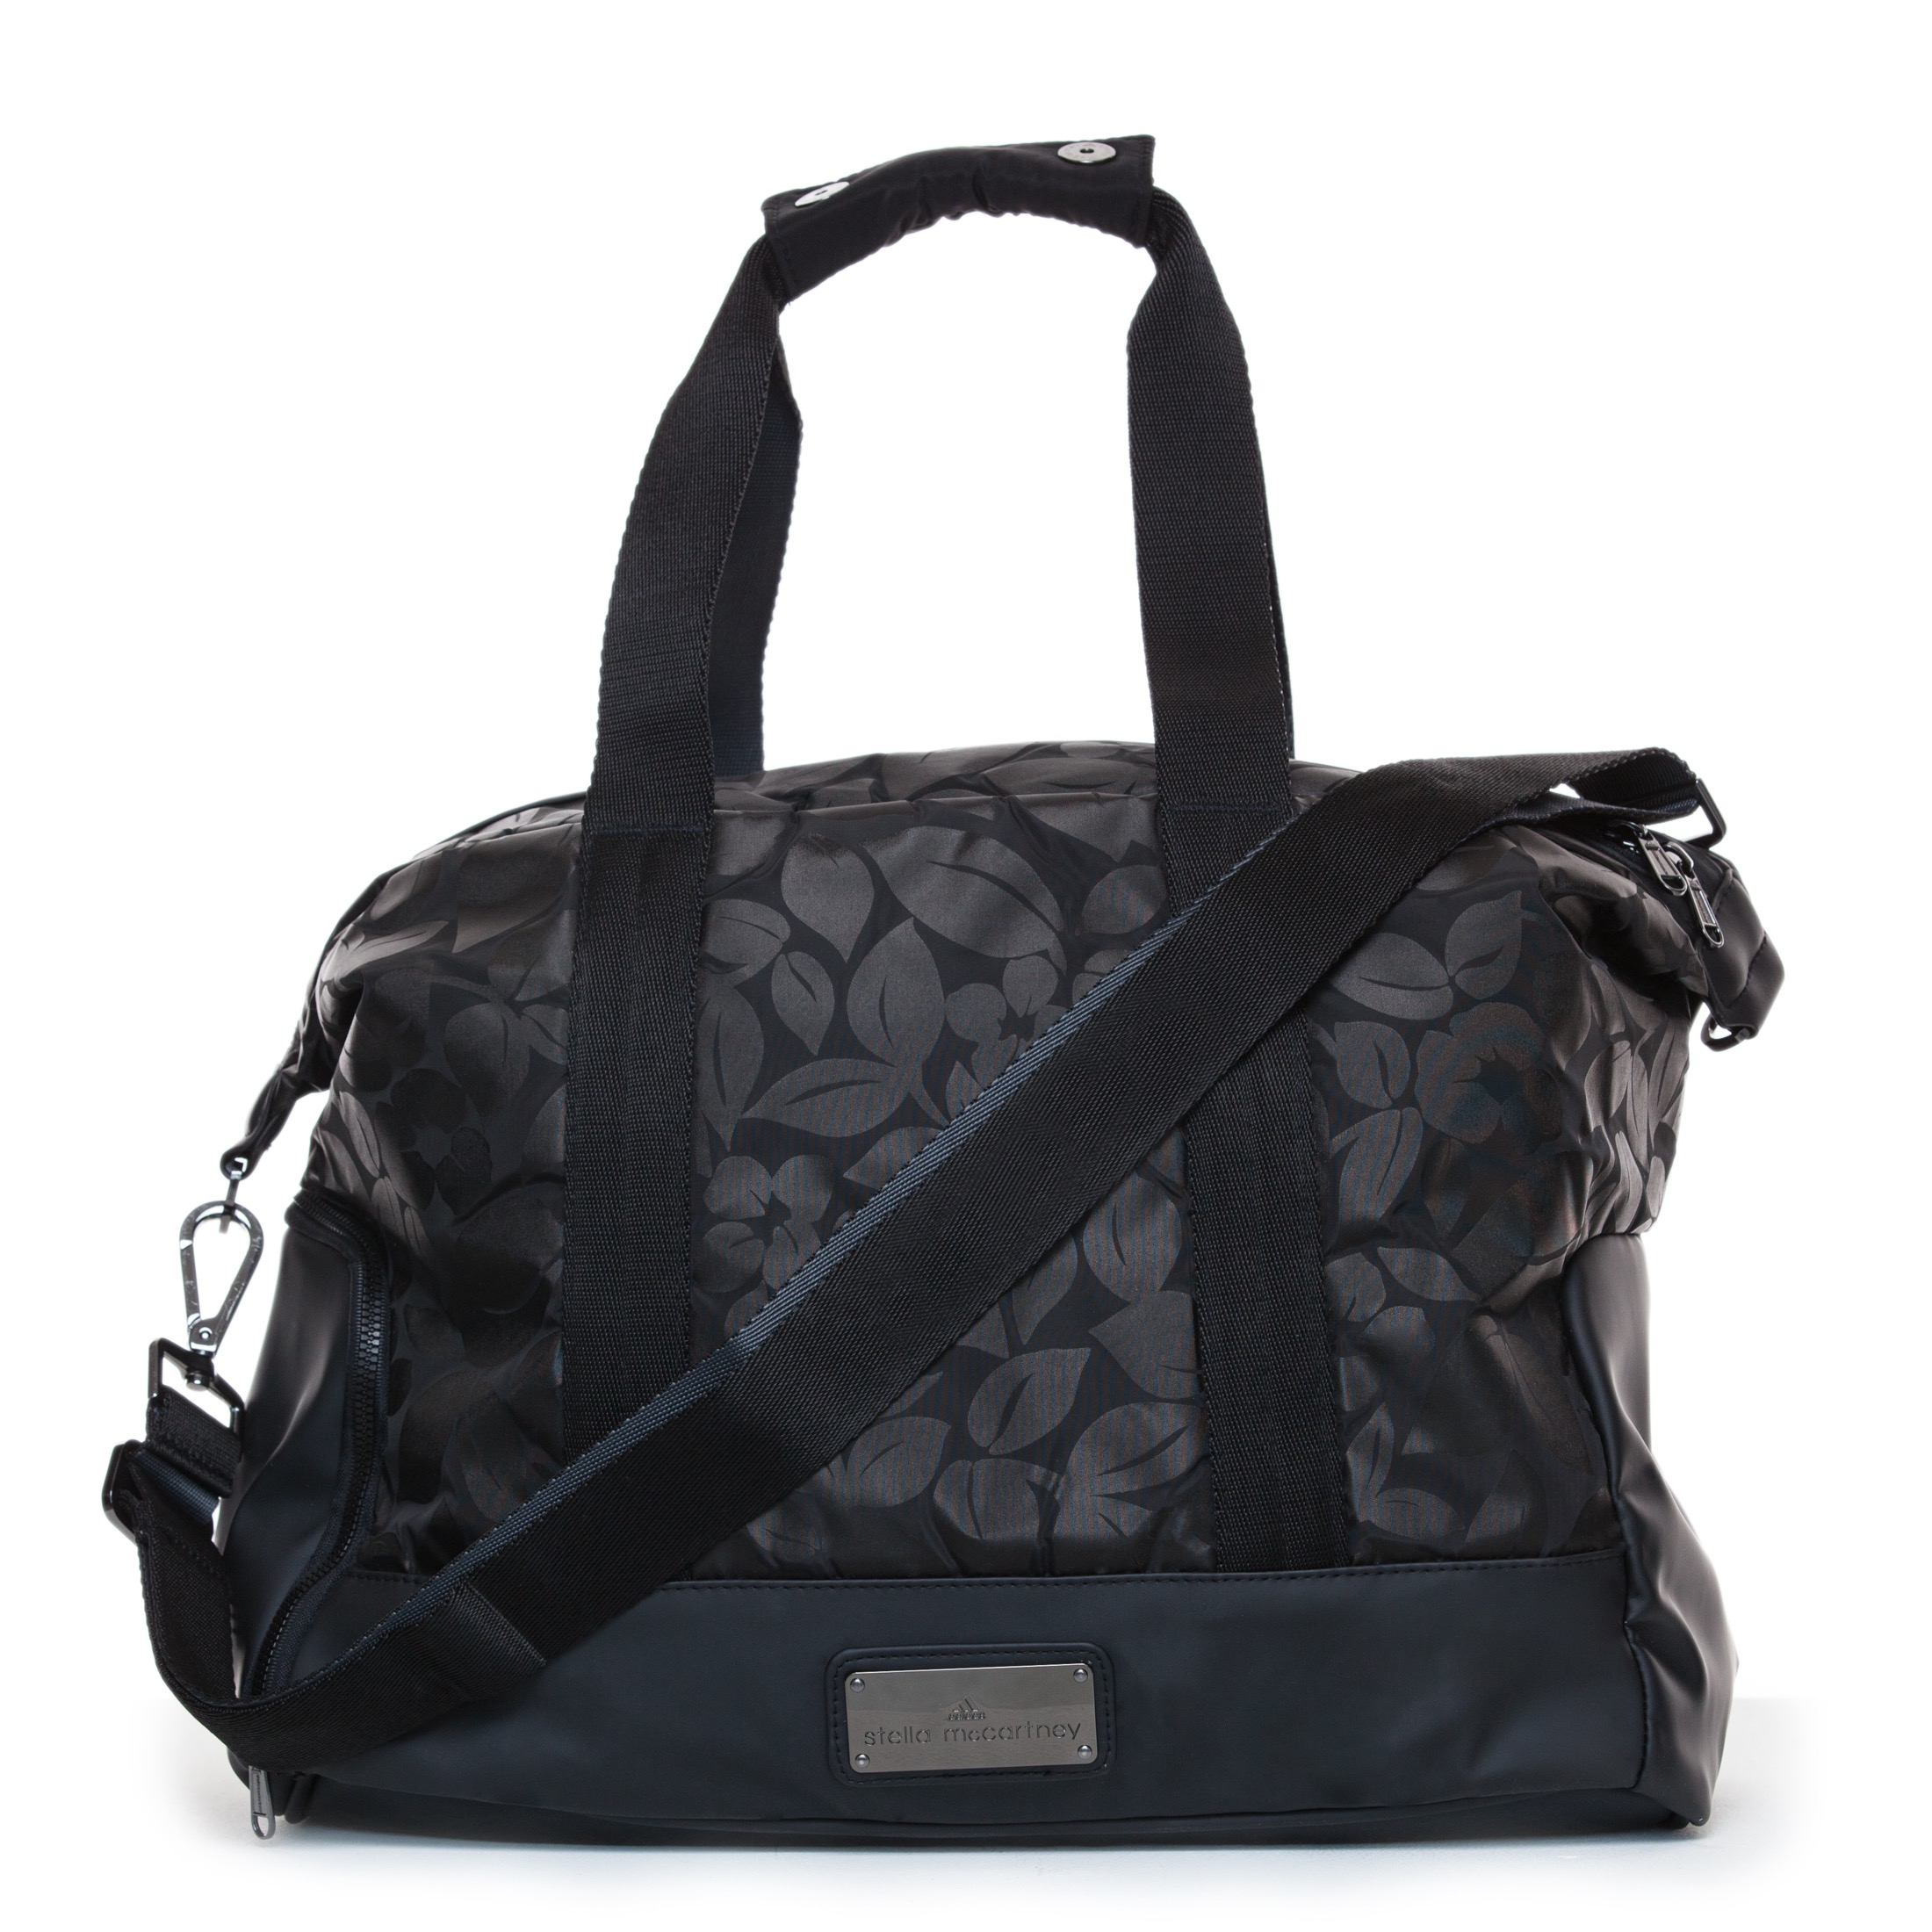 Lyst - adidas By Stella McCartney Small Gym Bag in Black bee9363ca1d86